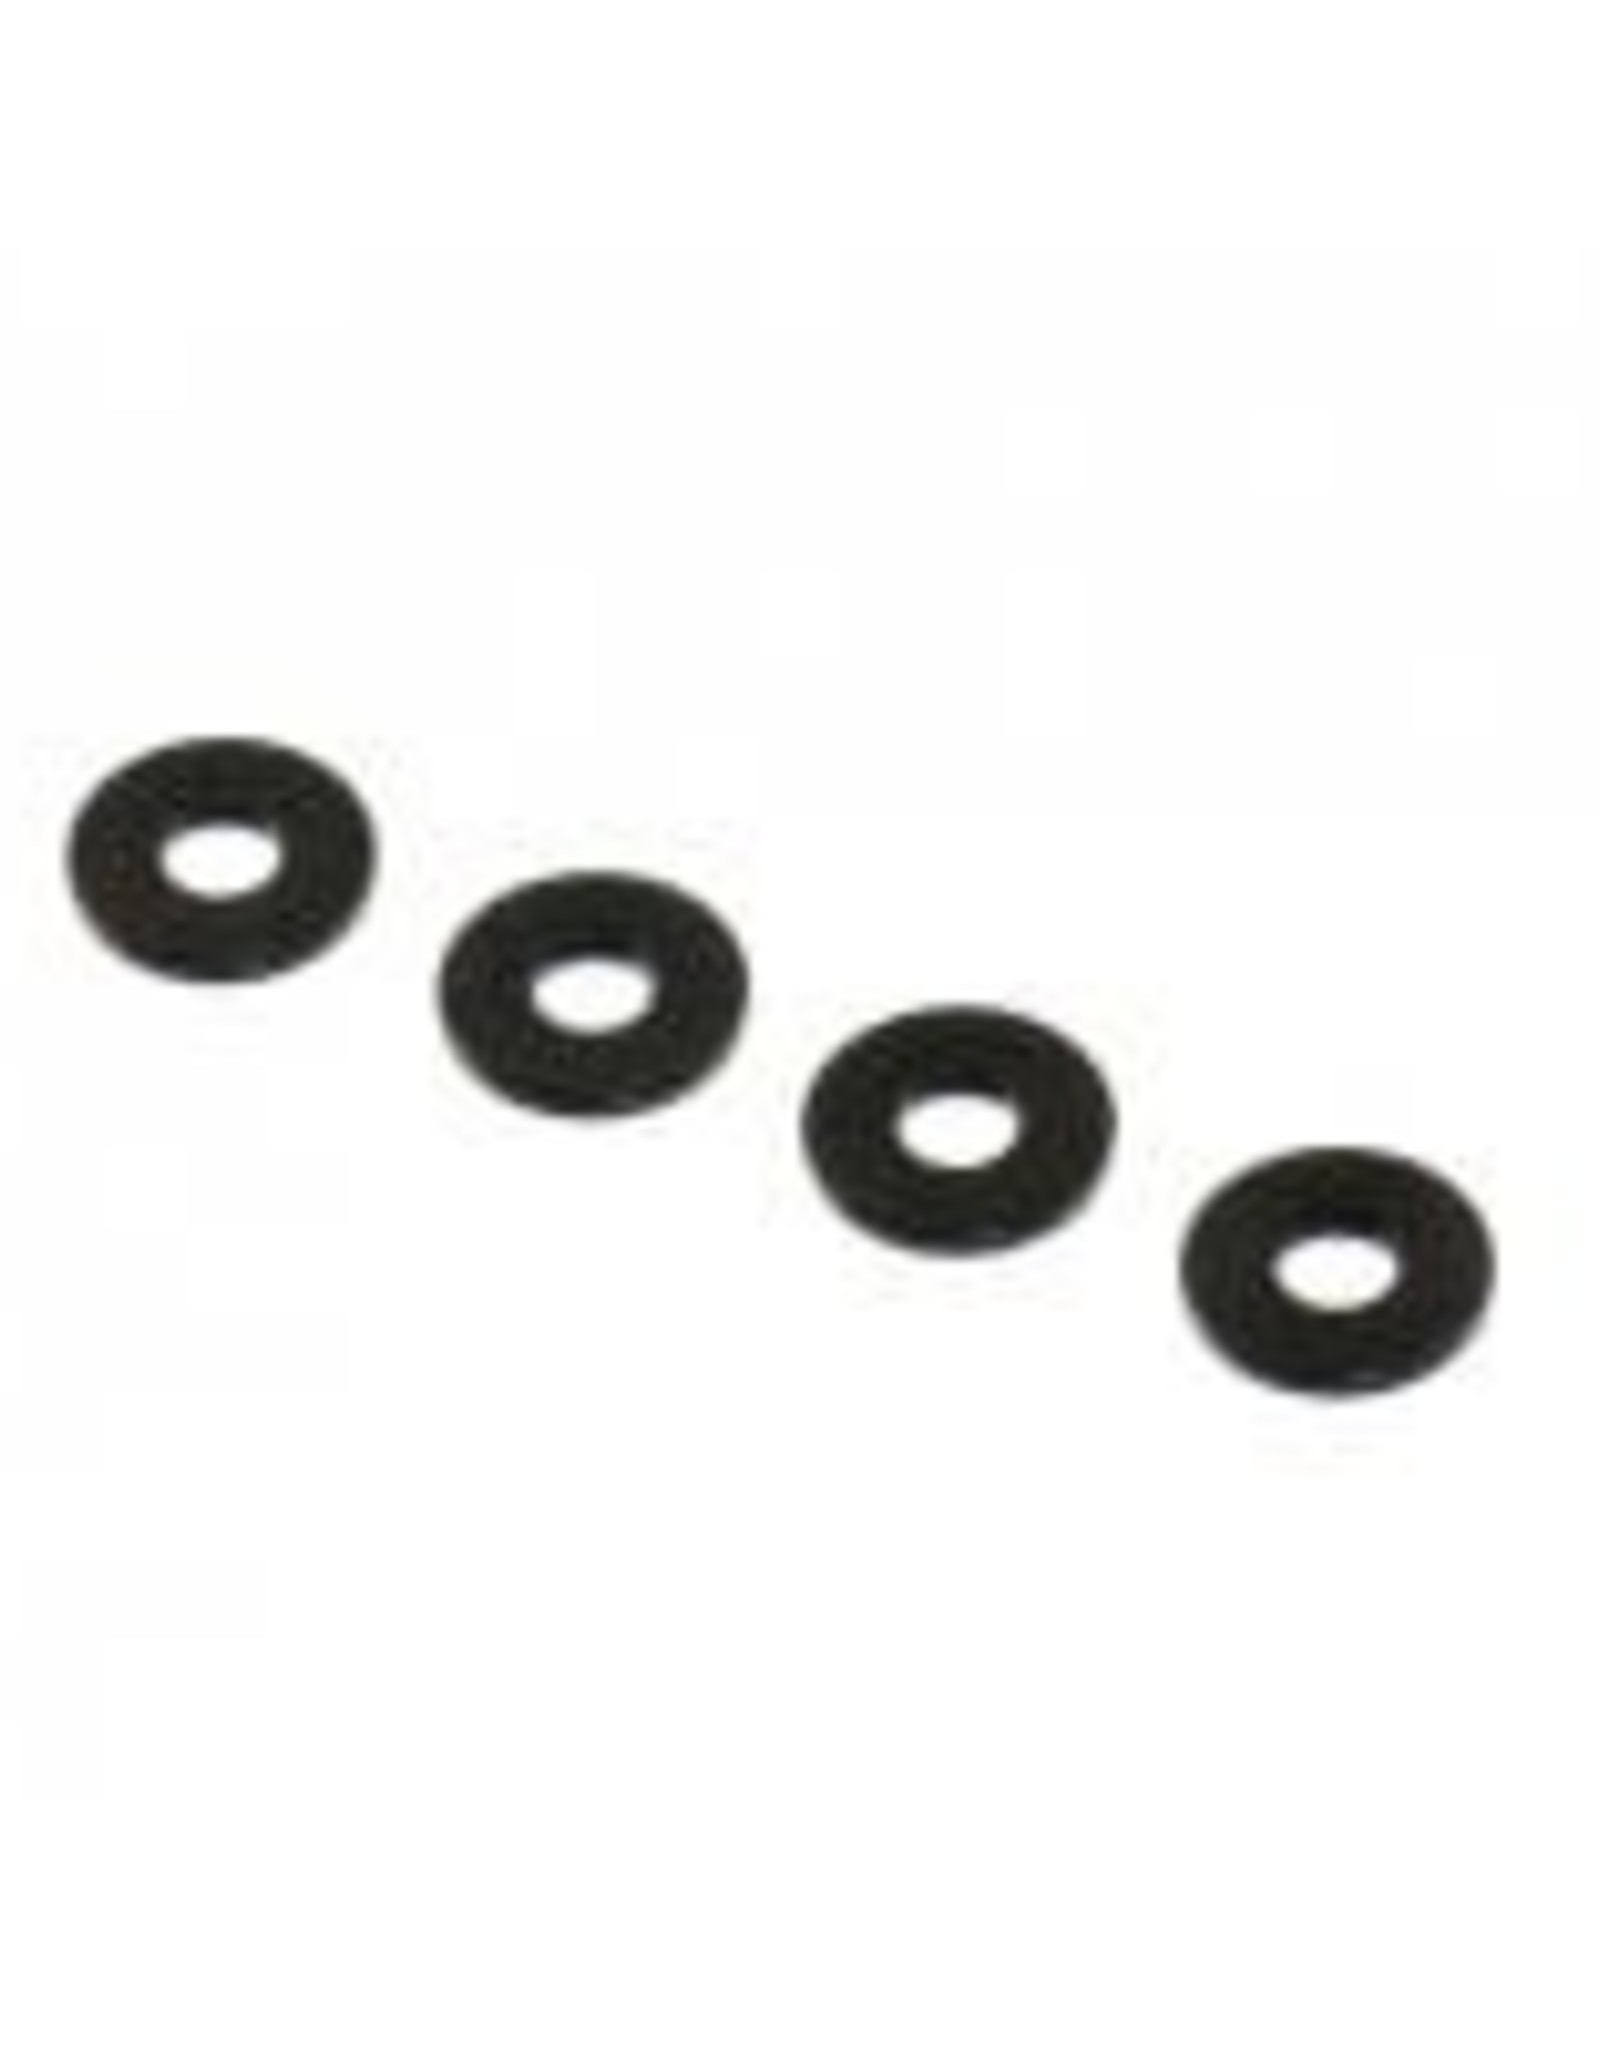 Roche Aluminium Height Adjust Spacer, 1.75mm